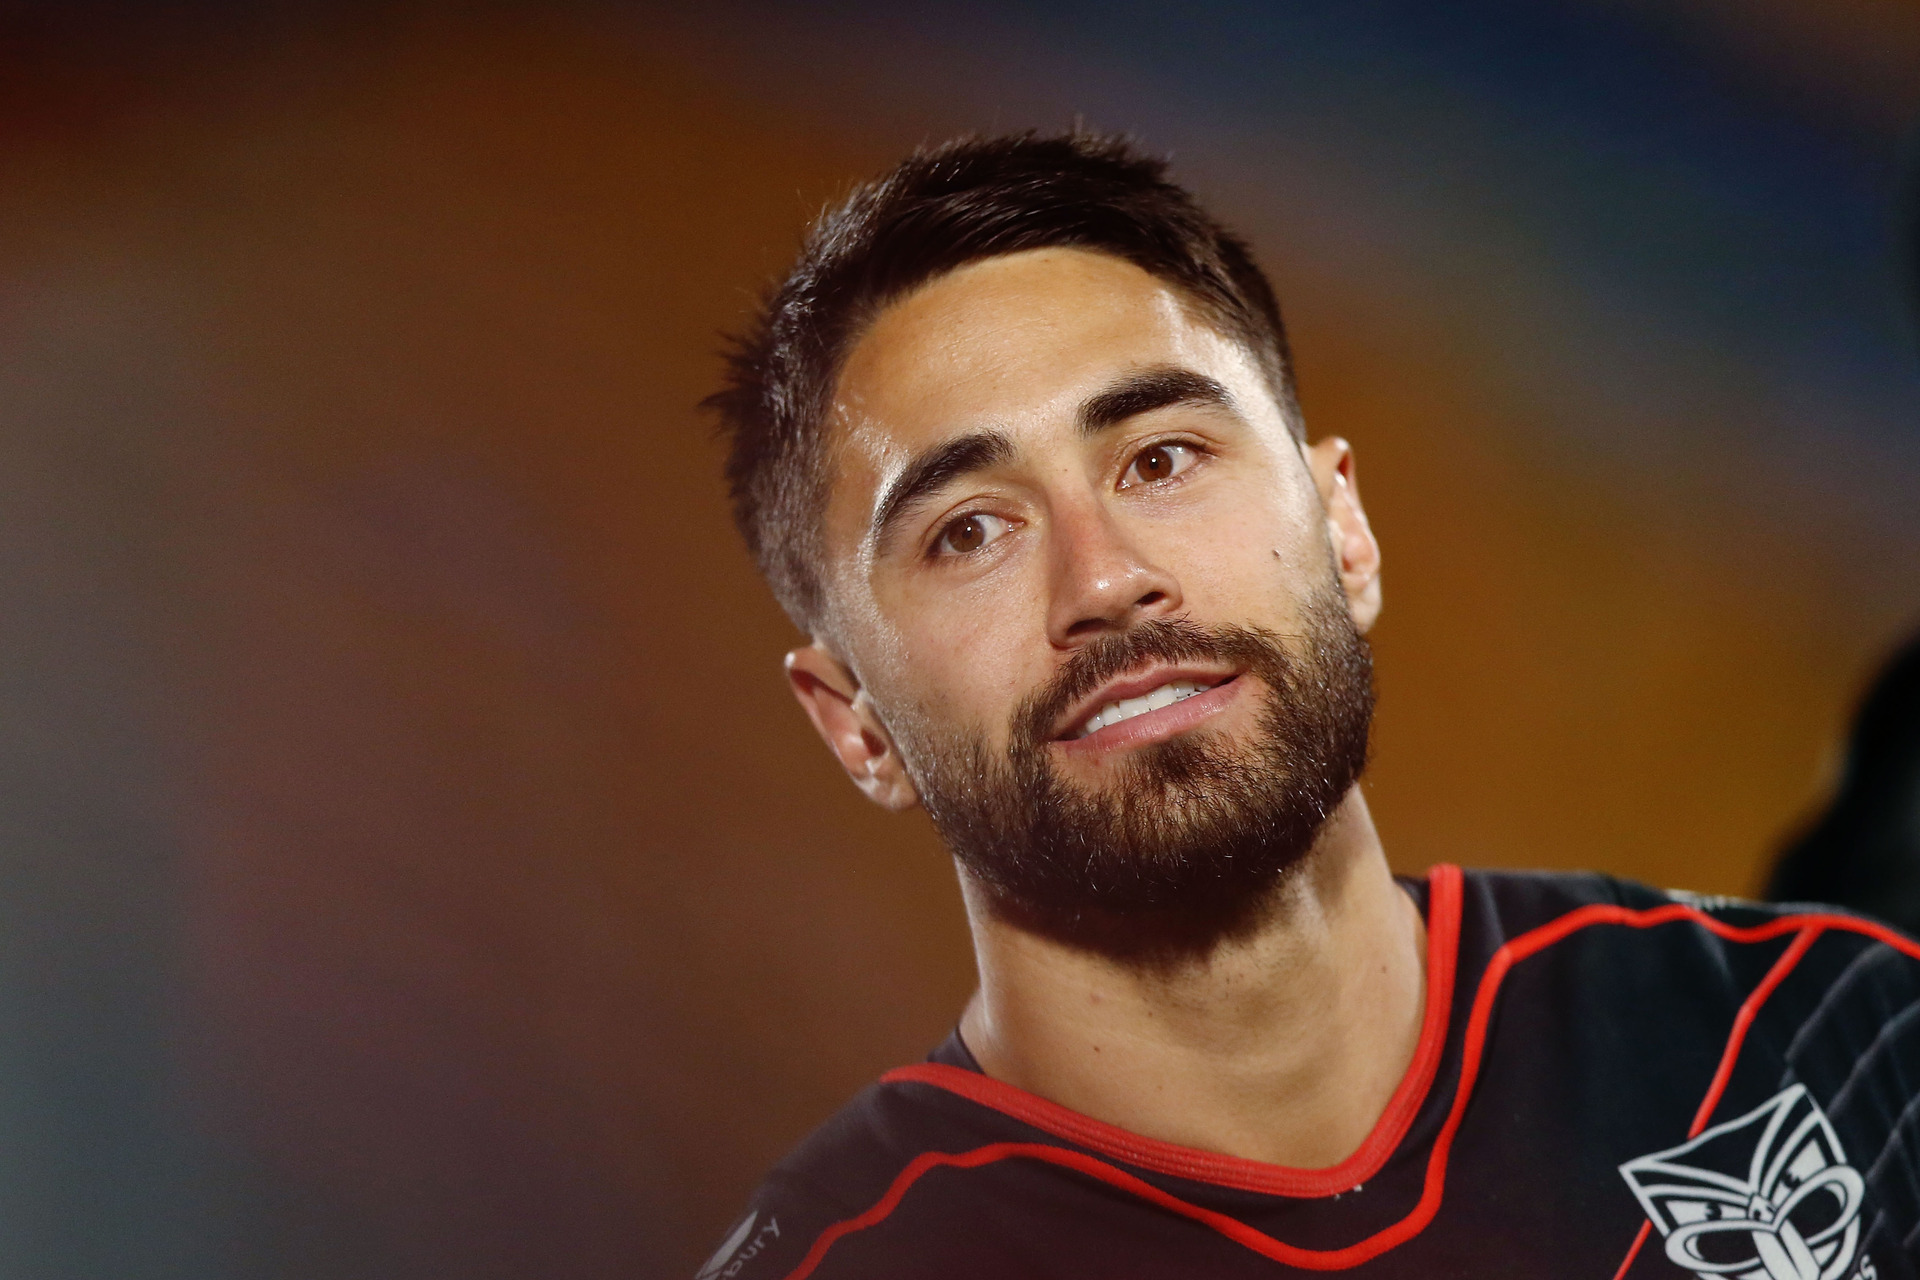 Rugby league: Shaun Johnson and New Zealand Warriors expected to part ways